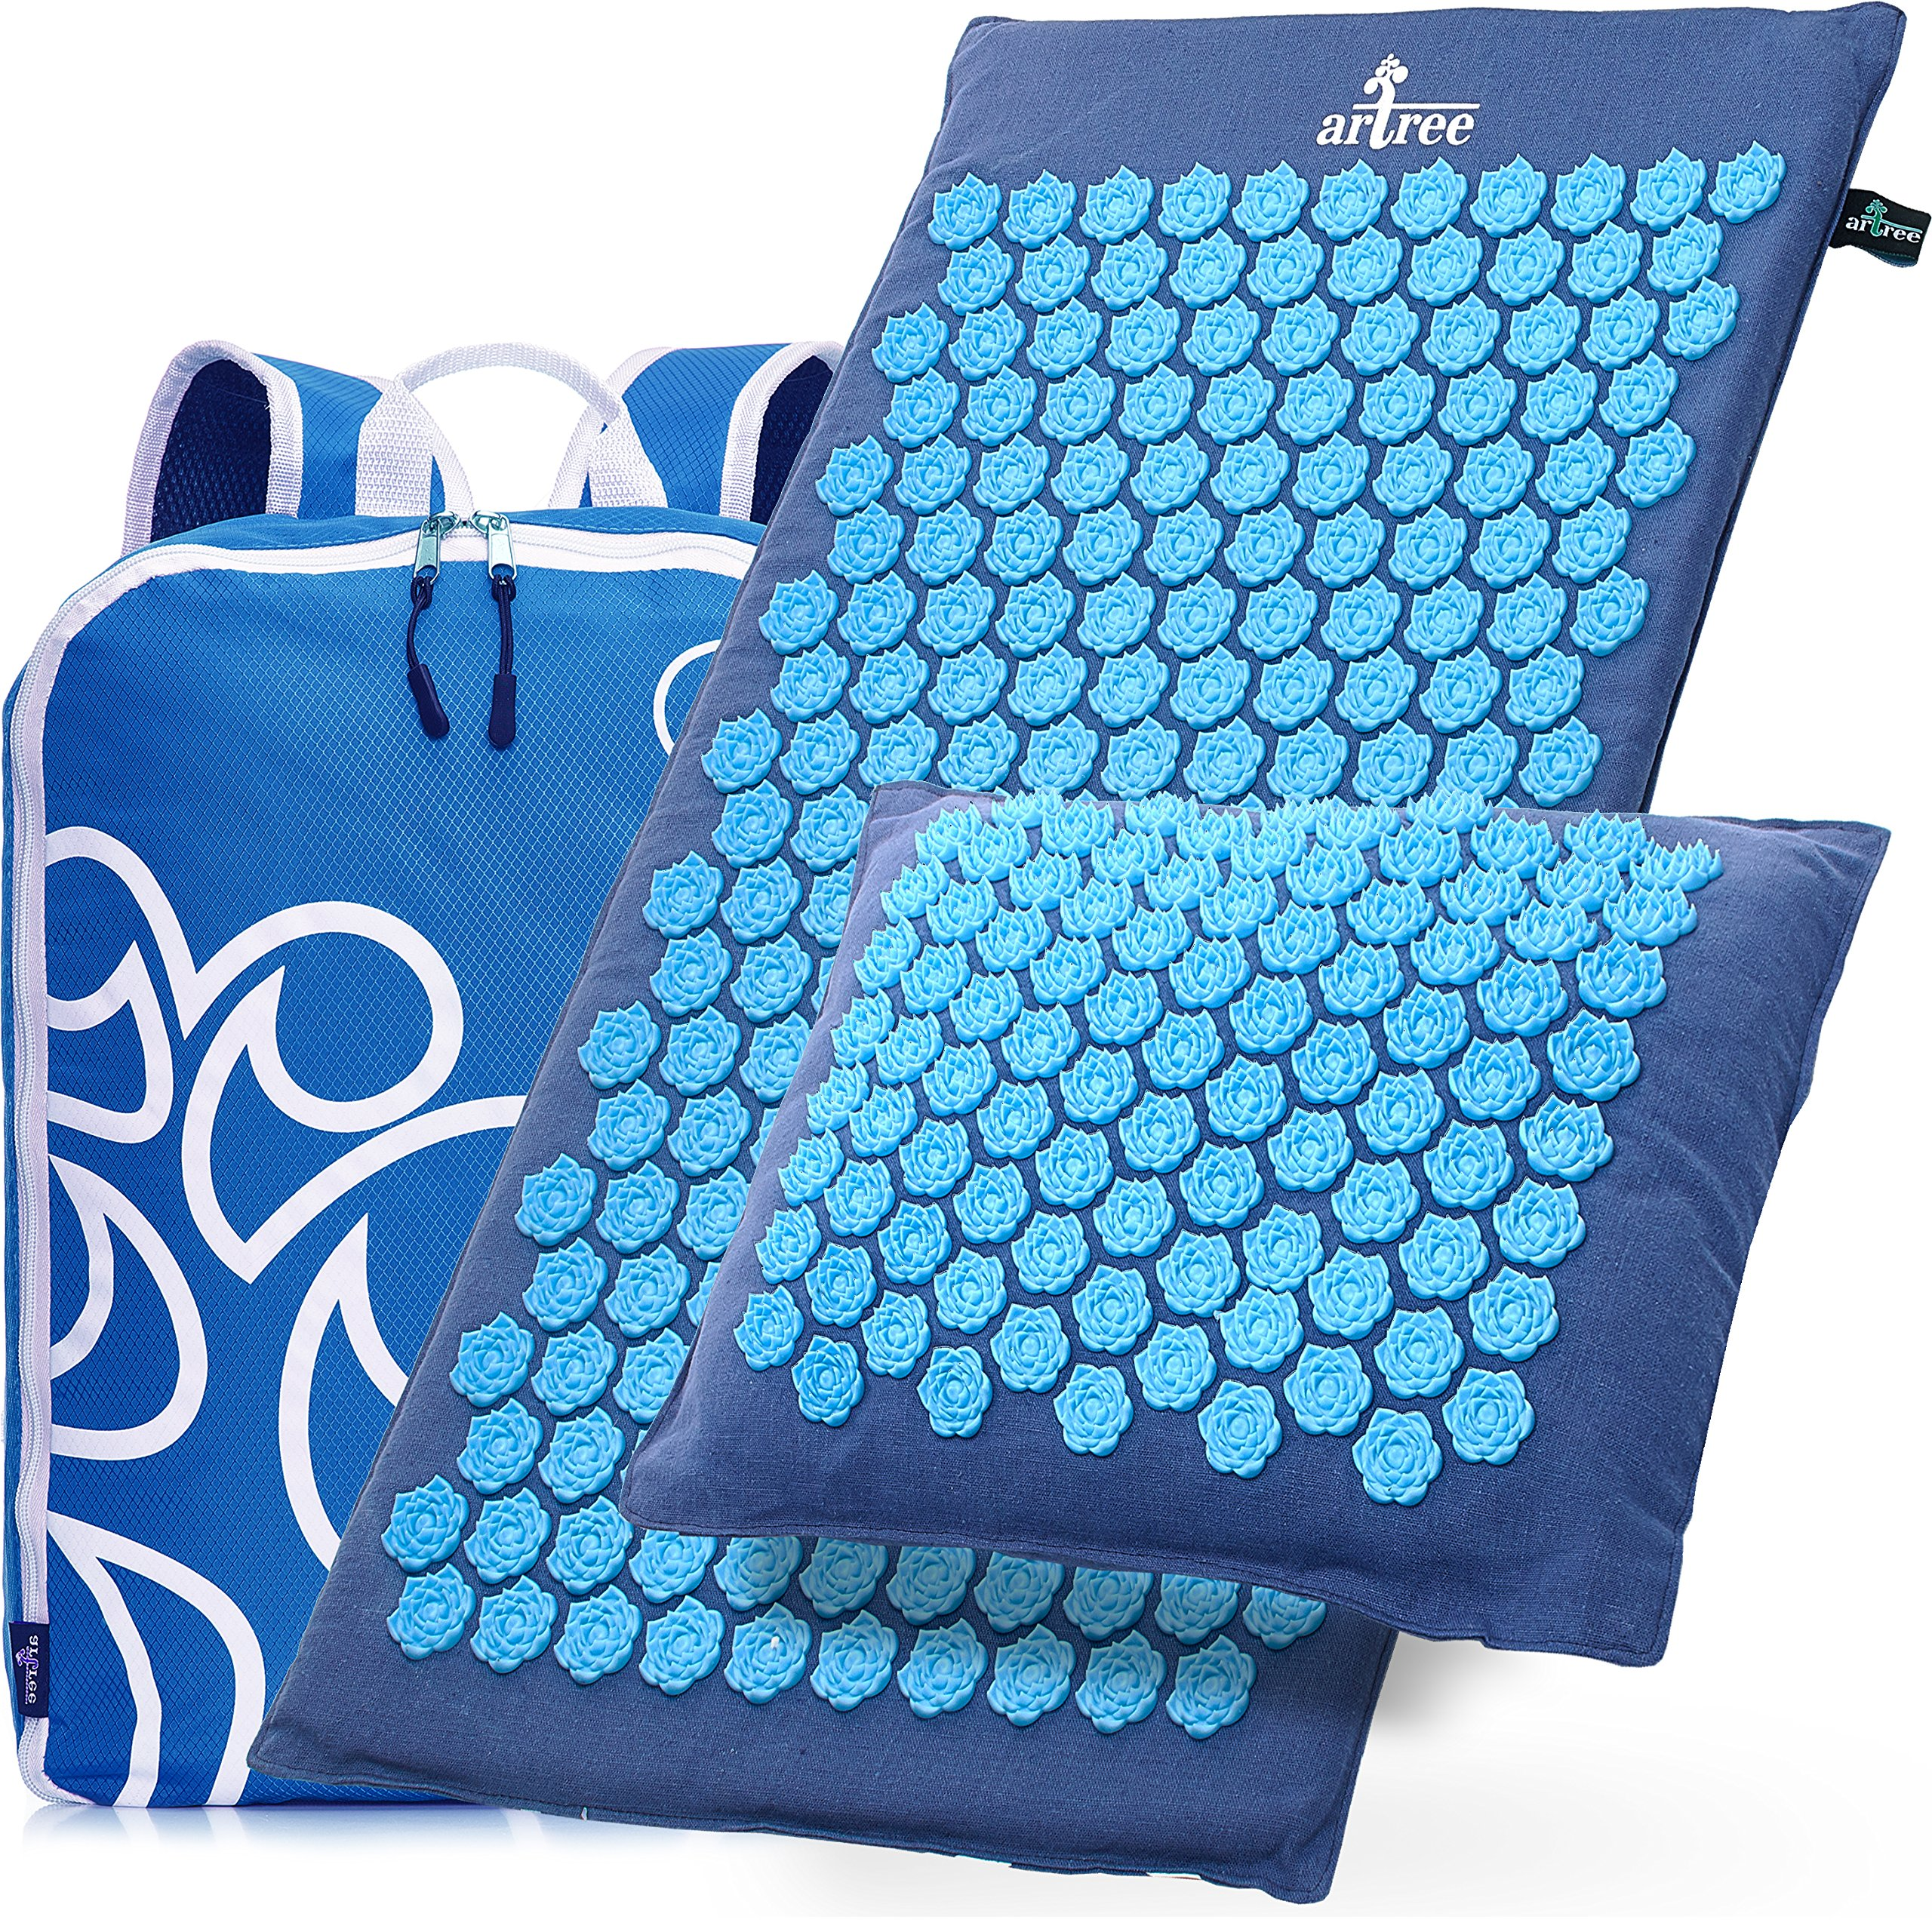 New Version Professional Acupressure Mat and Pillow Set Natural Linen – Best Acupuncture Mat Gift – Back And Neck Pain Relief Reflexology Mat – For Women And Men - Stress and Muscle Relief by Artree (Image #1)